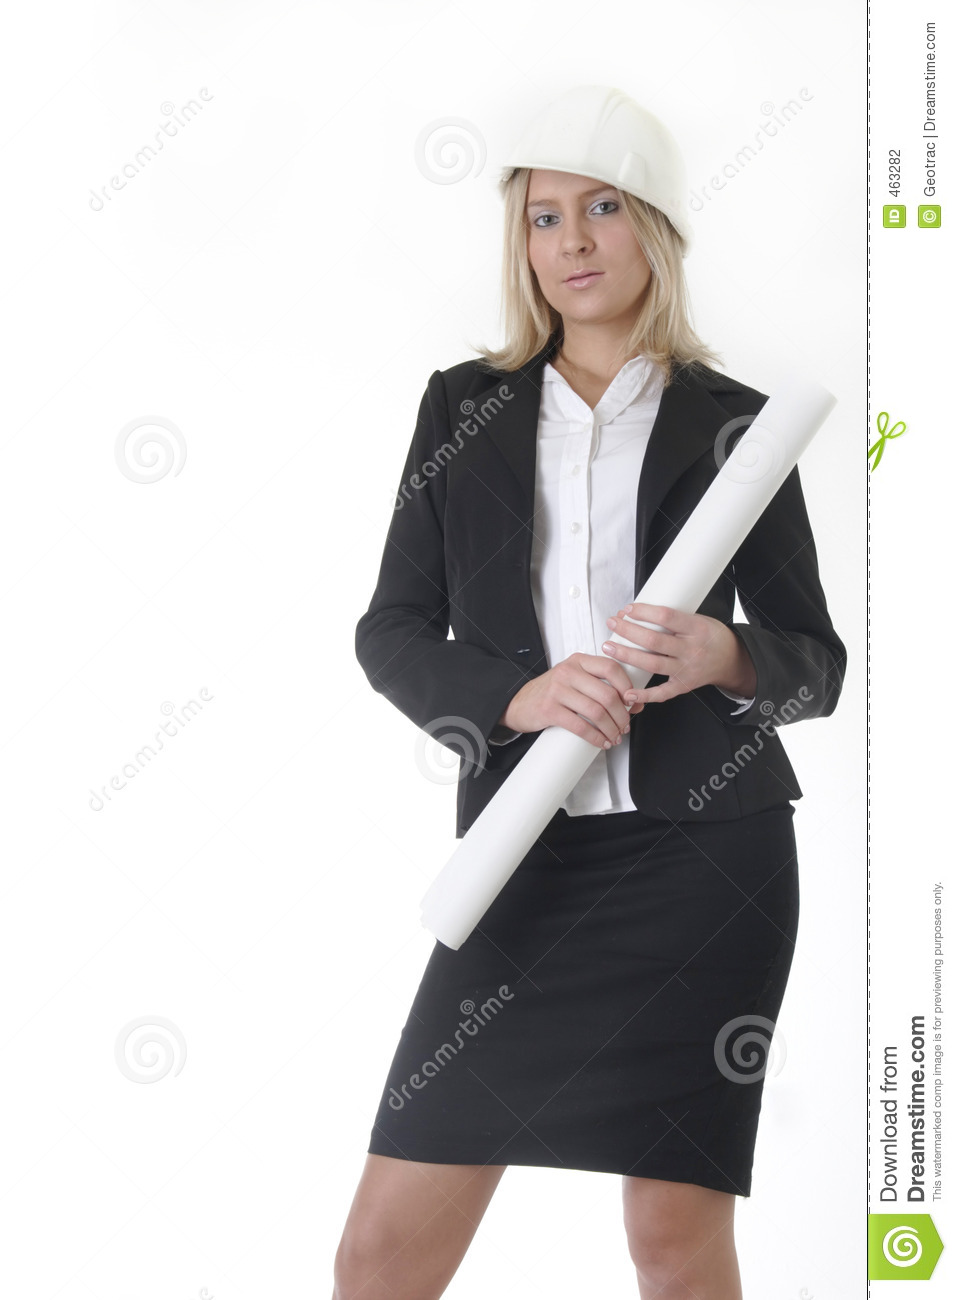 Download Lady Architect Holding Rolled Up Blueprints Stock Photo - Image of plans, helmet: 463282